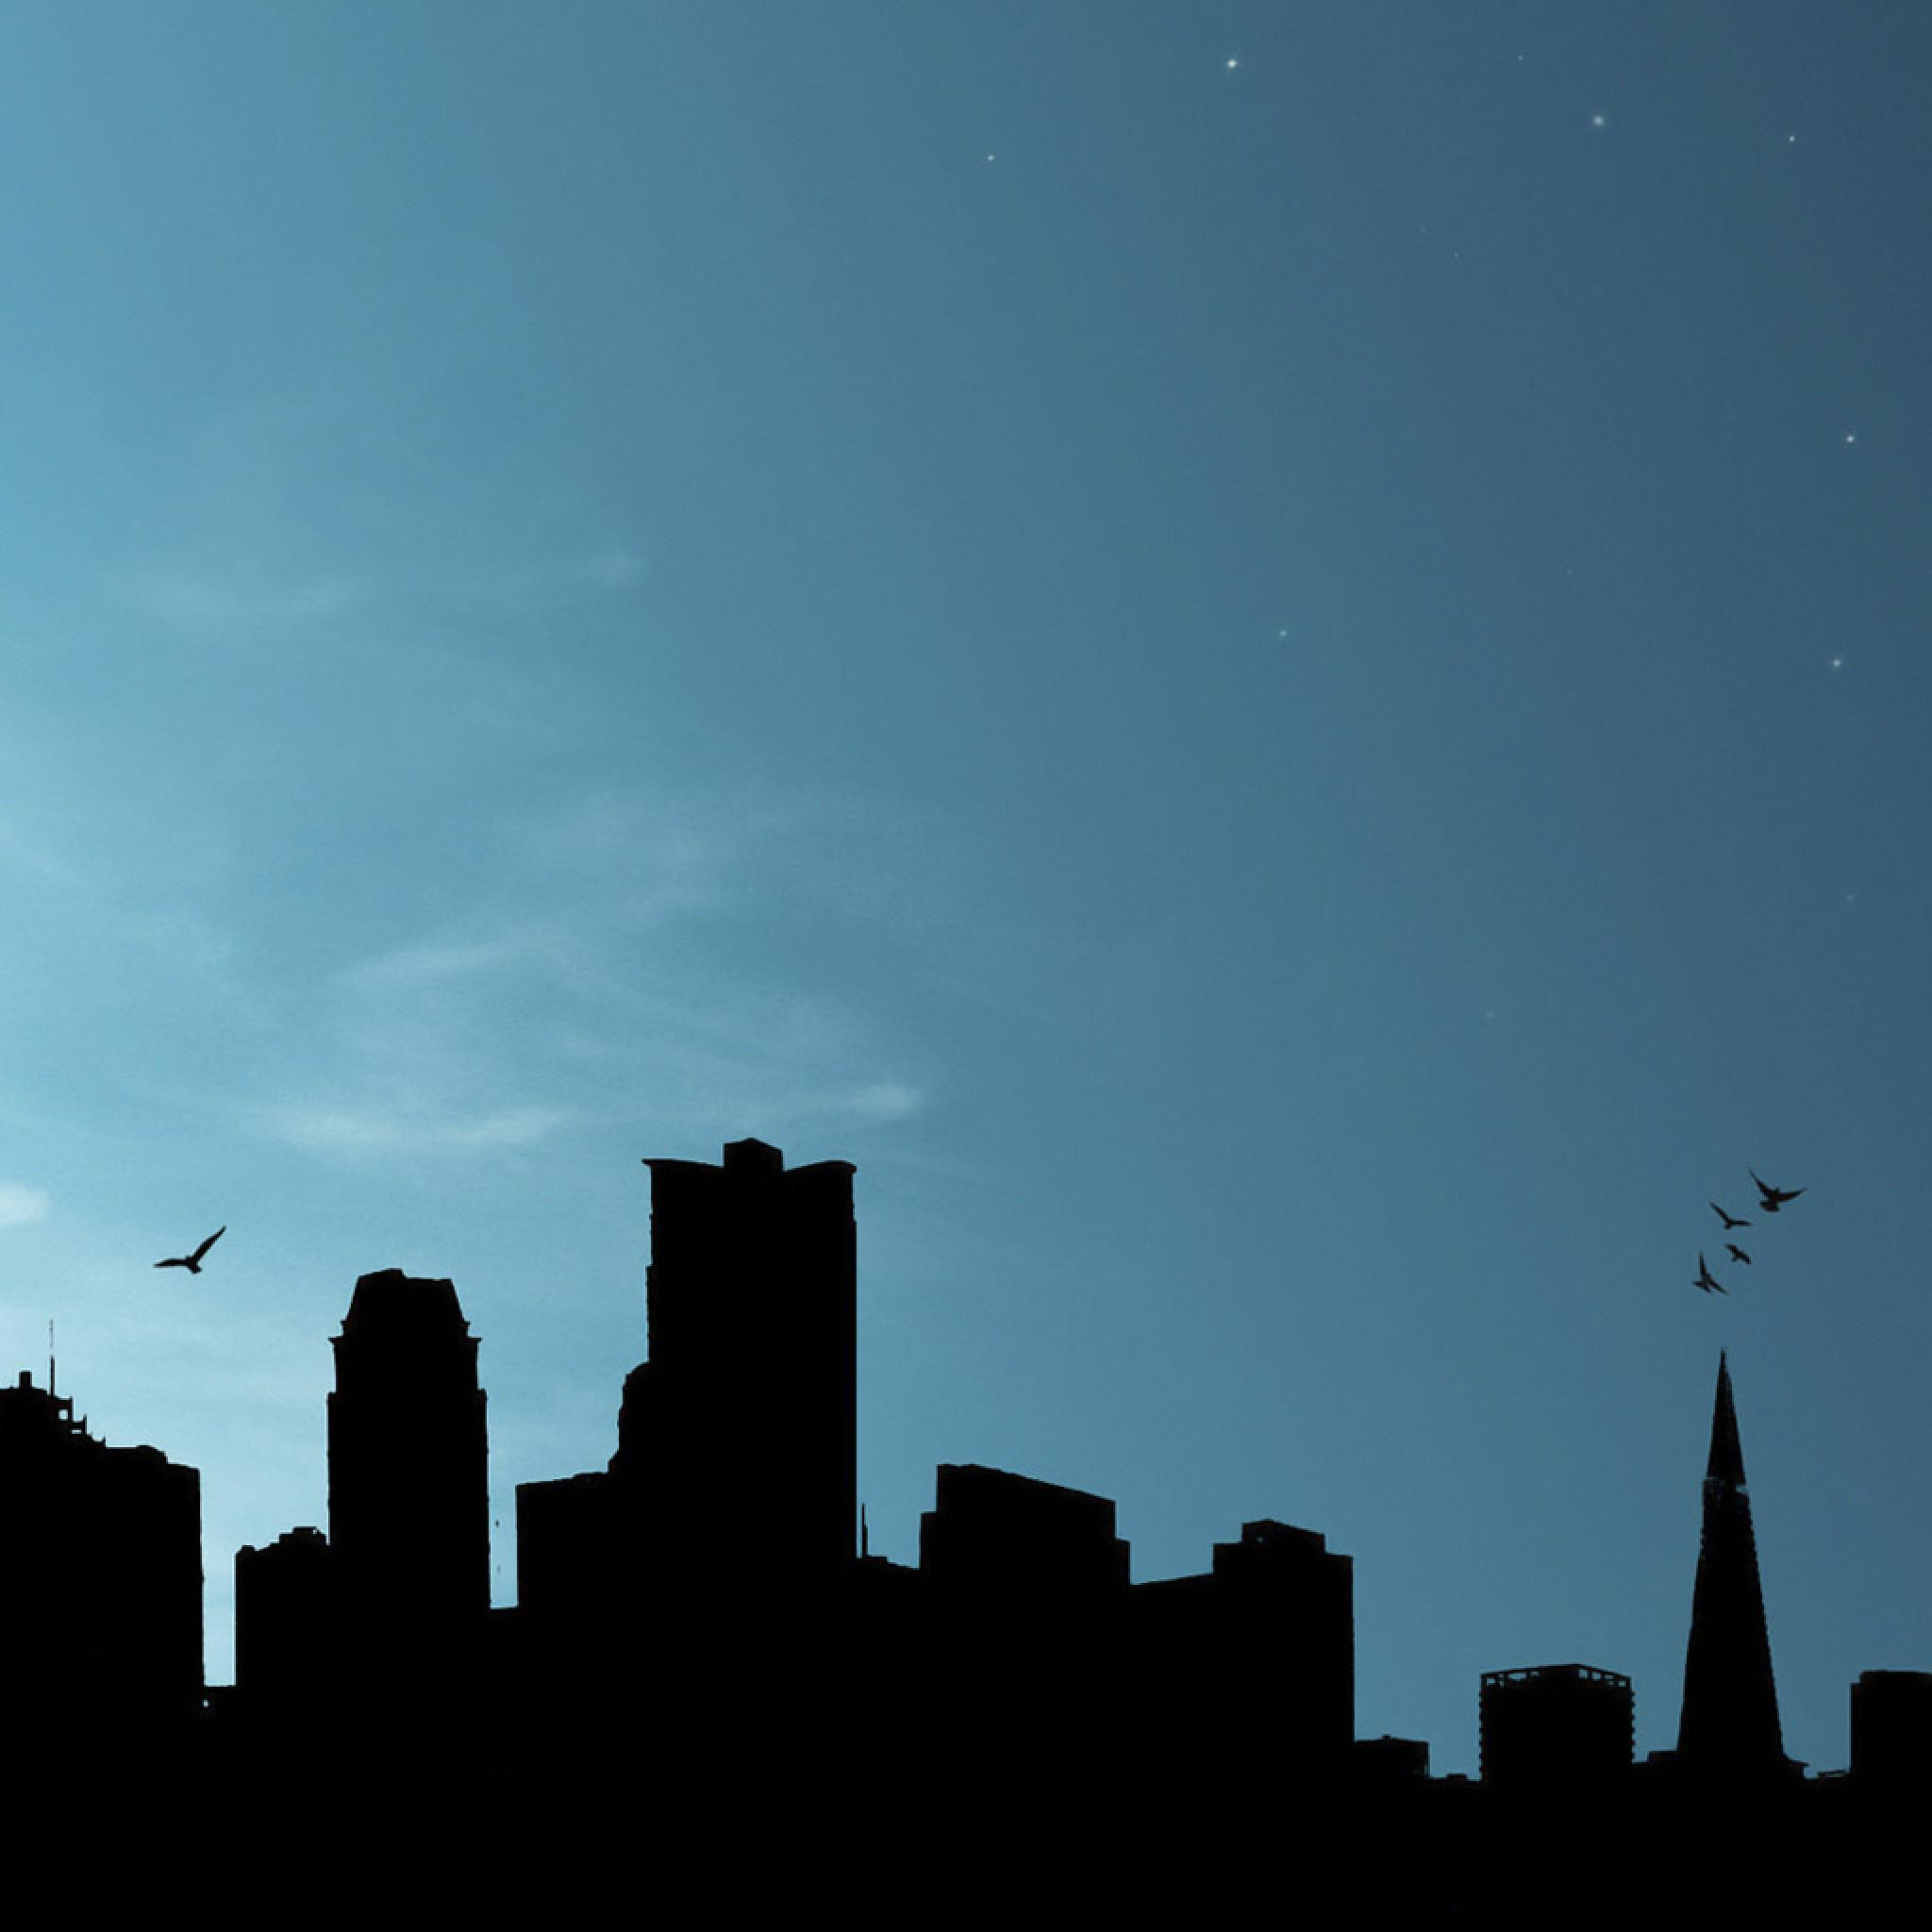 Tribal Wallpaper For Iphone Vector City Skyline Silhouettes Vector Art Ipad Iphone